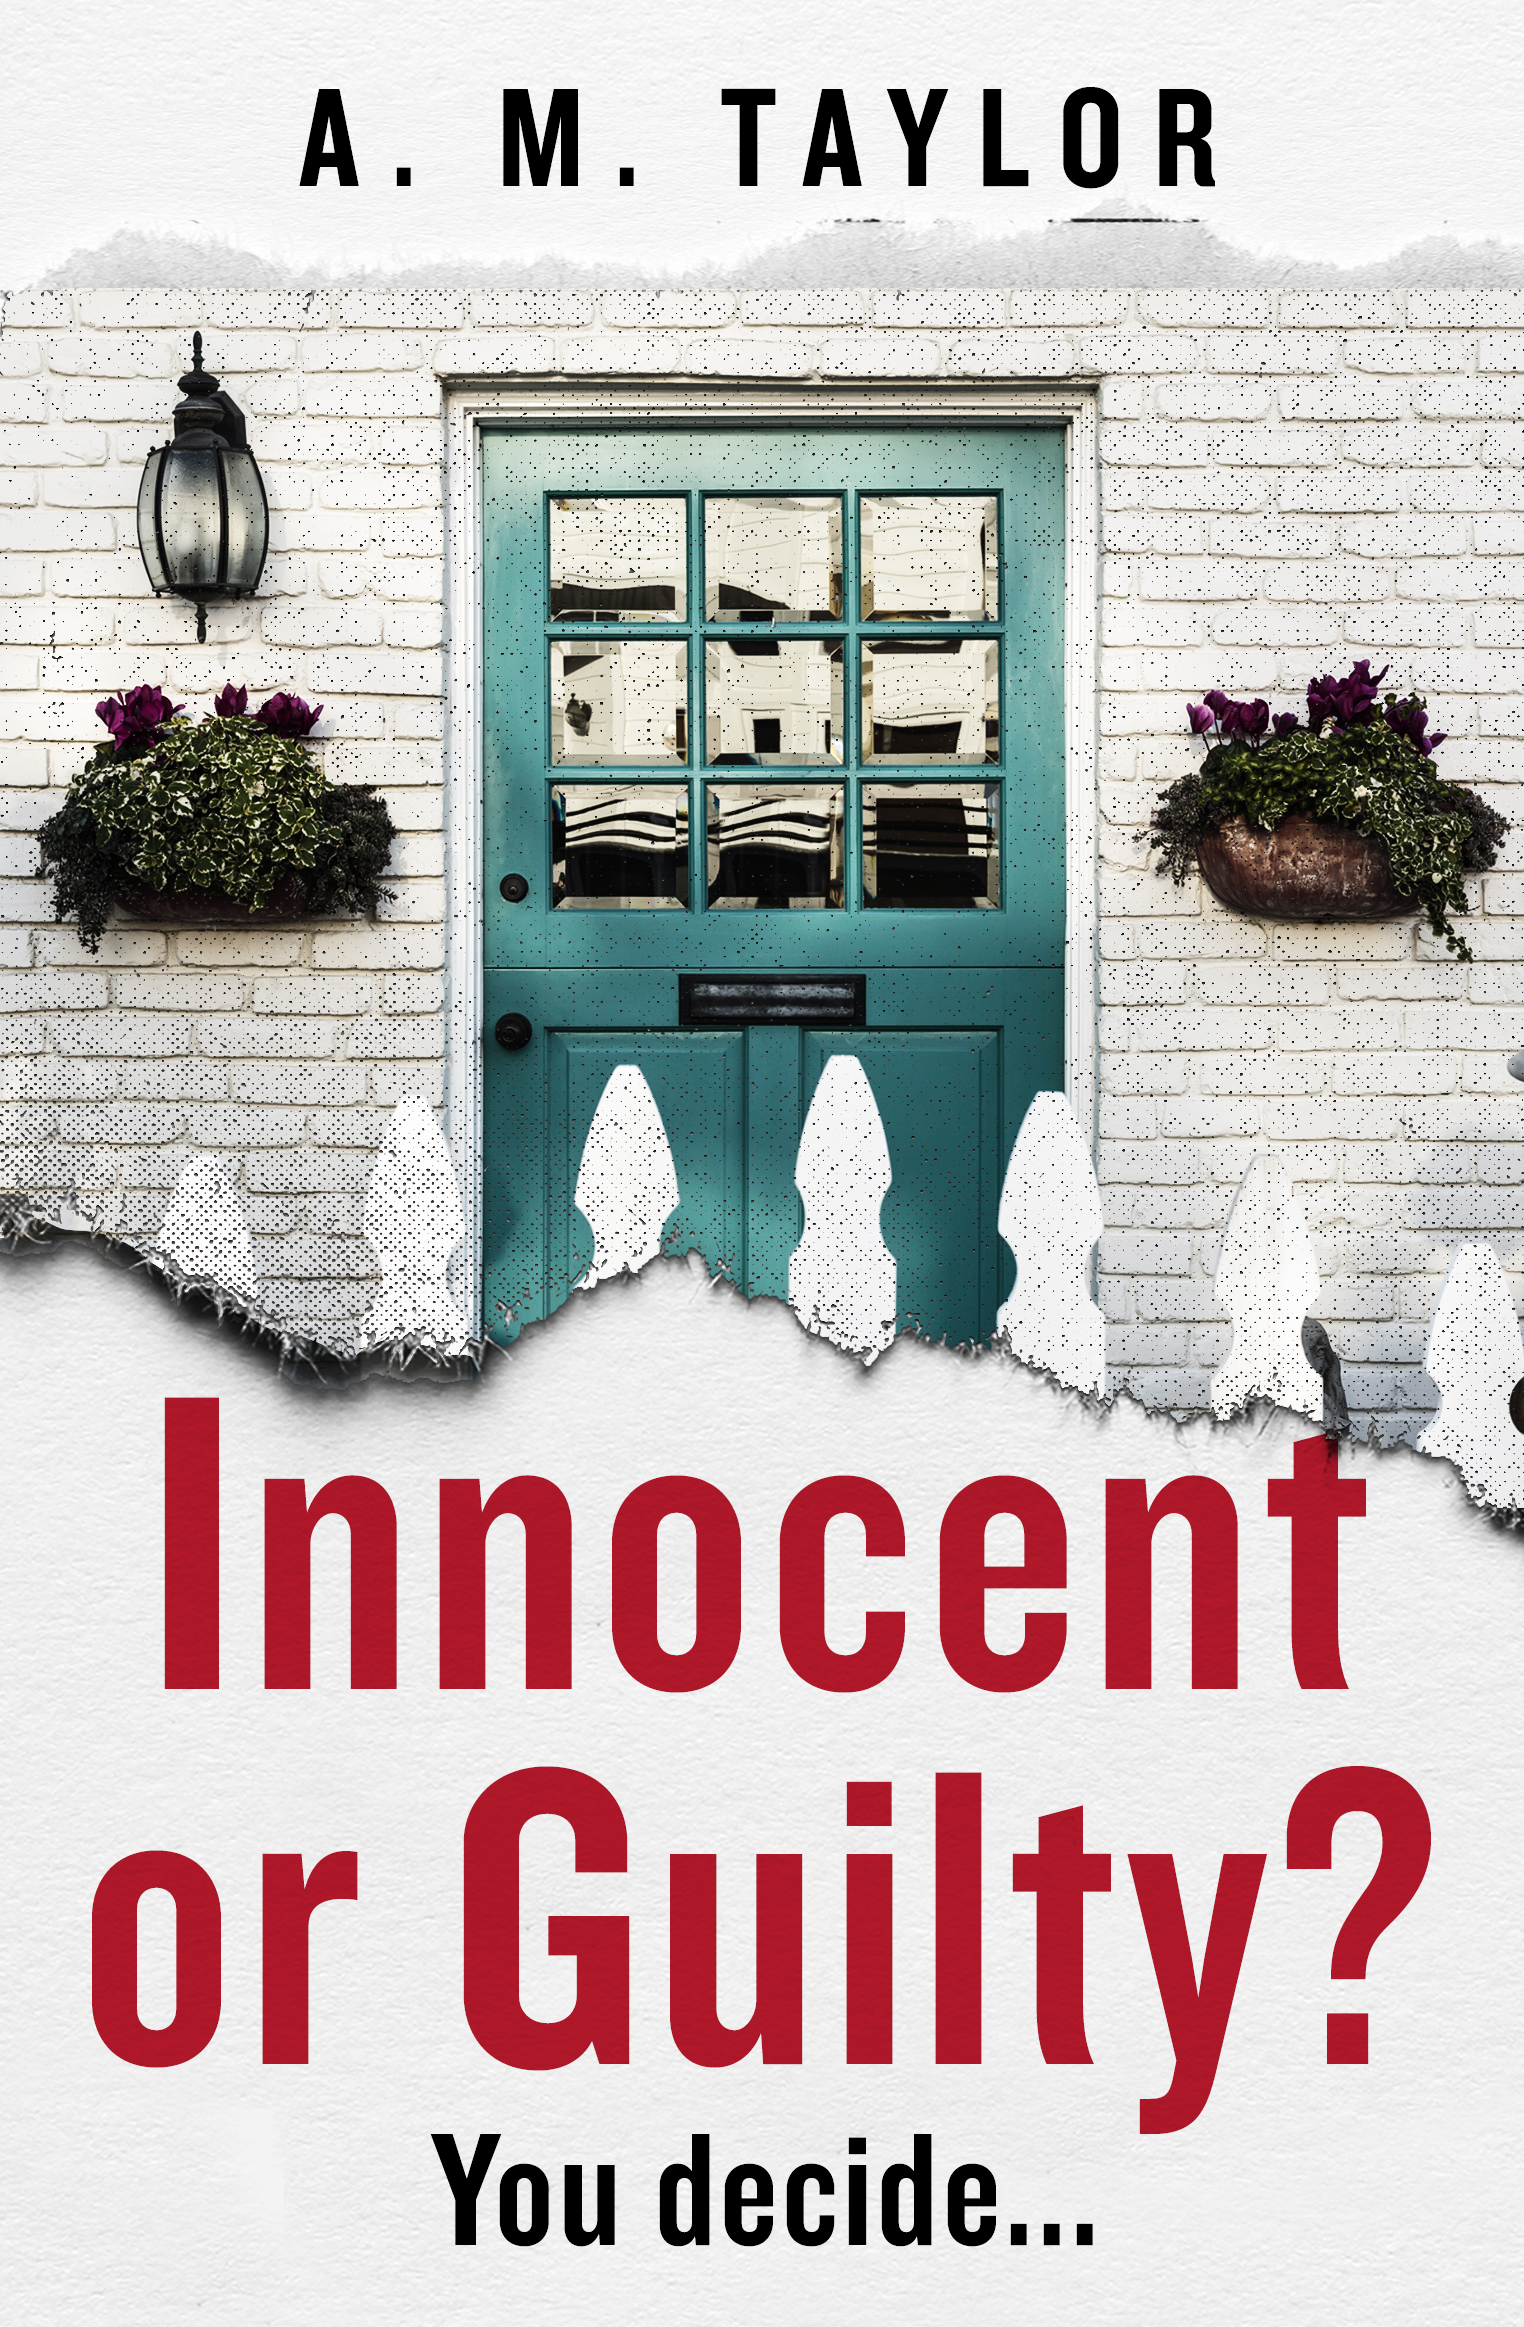 Innocent or Guilty? - A gripping psychological thriller full of twists and turns!Is the right person behind bars?One morning ten years ago, the town of Twin Rivers changed forever when the body of Tyler Washington was found in the woods. Son of the mayor, star of the high school basketball team – his death struck right at the heart of this tight-knit community.For Olivia Hall, Tyler's death heralded the start of her own personal nightmare – her twin brother, Ethan, was arrested for Tyler's murder. Ten years later, Ethan is still in jail. Olivia is convinced he is innocent, and now, a true crime podcast has taken up his case.As the podcast digs deeper, secrets, lies and shocking revelations are all uncovered. For the first time, Olivia dares to hope that Ethan may be set free. But if he didn't kill Tyler, who did? And how far will they go to keep their secrets safe?Perfect for fans of podcasts Serial, Happy Face and The Teacher's Pet, and TV shows Making a Murderer, Staircase and Dirty John'A.M.Taylor hits her stride with this fast-paced flashback mystery where legal thriller meets true crime podcast' Rachel Sargeant, author of The Perfect NeighboursOut September 28, 2019Pre-order your copy now